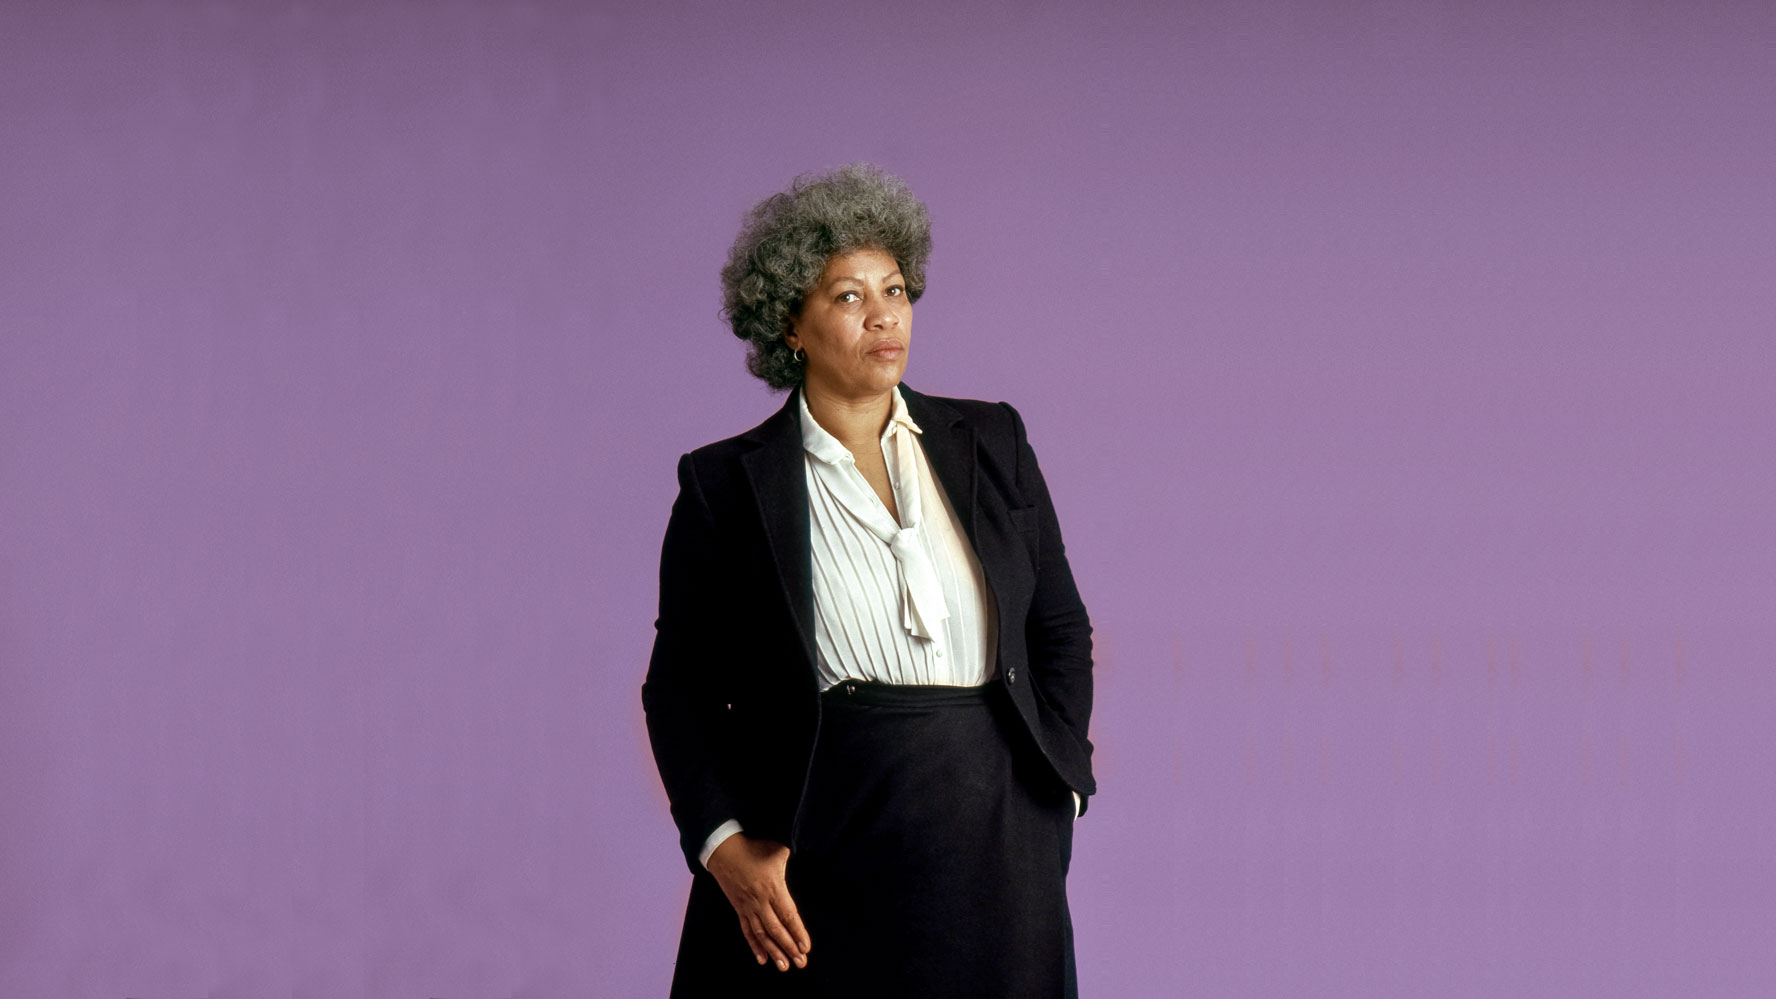 """Author and Nobel laureate Toni Morrison is profiled in the documentary """"Toni Morrison: The Pieces I Am."""" (Photo by Timothy Greenfield-Sanders, courtesy of Magnolia Pictures.)"""